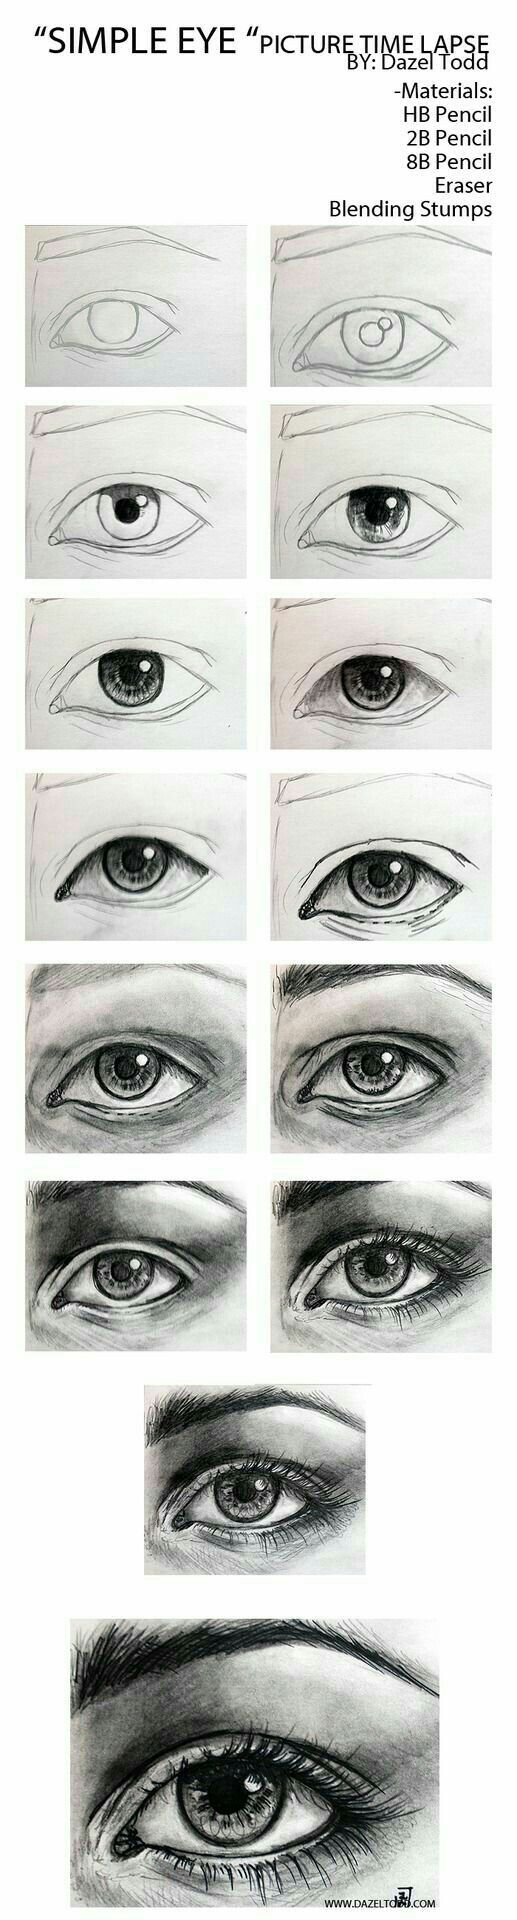 Pin by Hannah Correa on Drawing Reference   Pinterest   Draw, Head ...